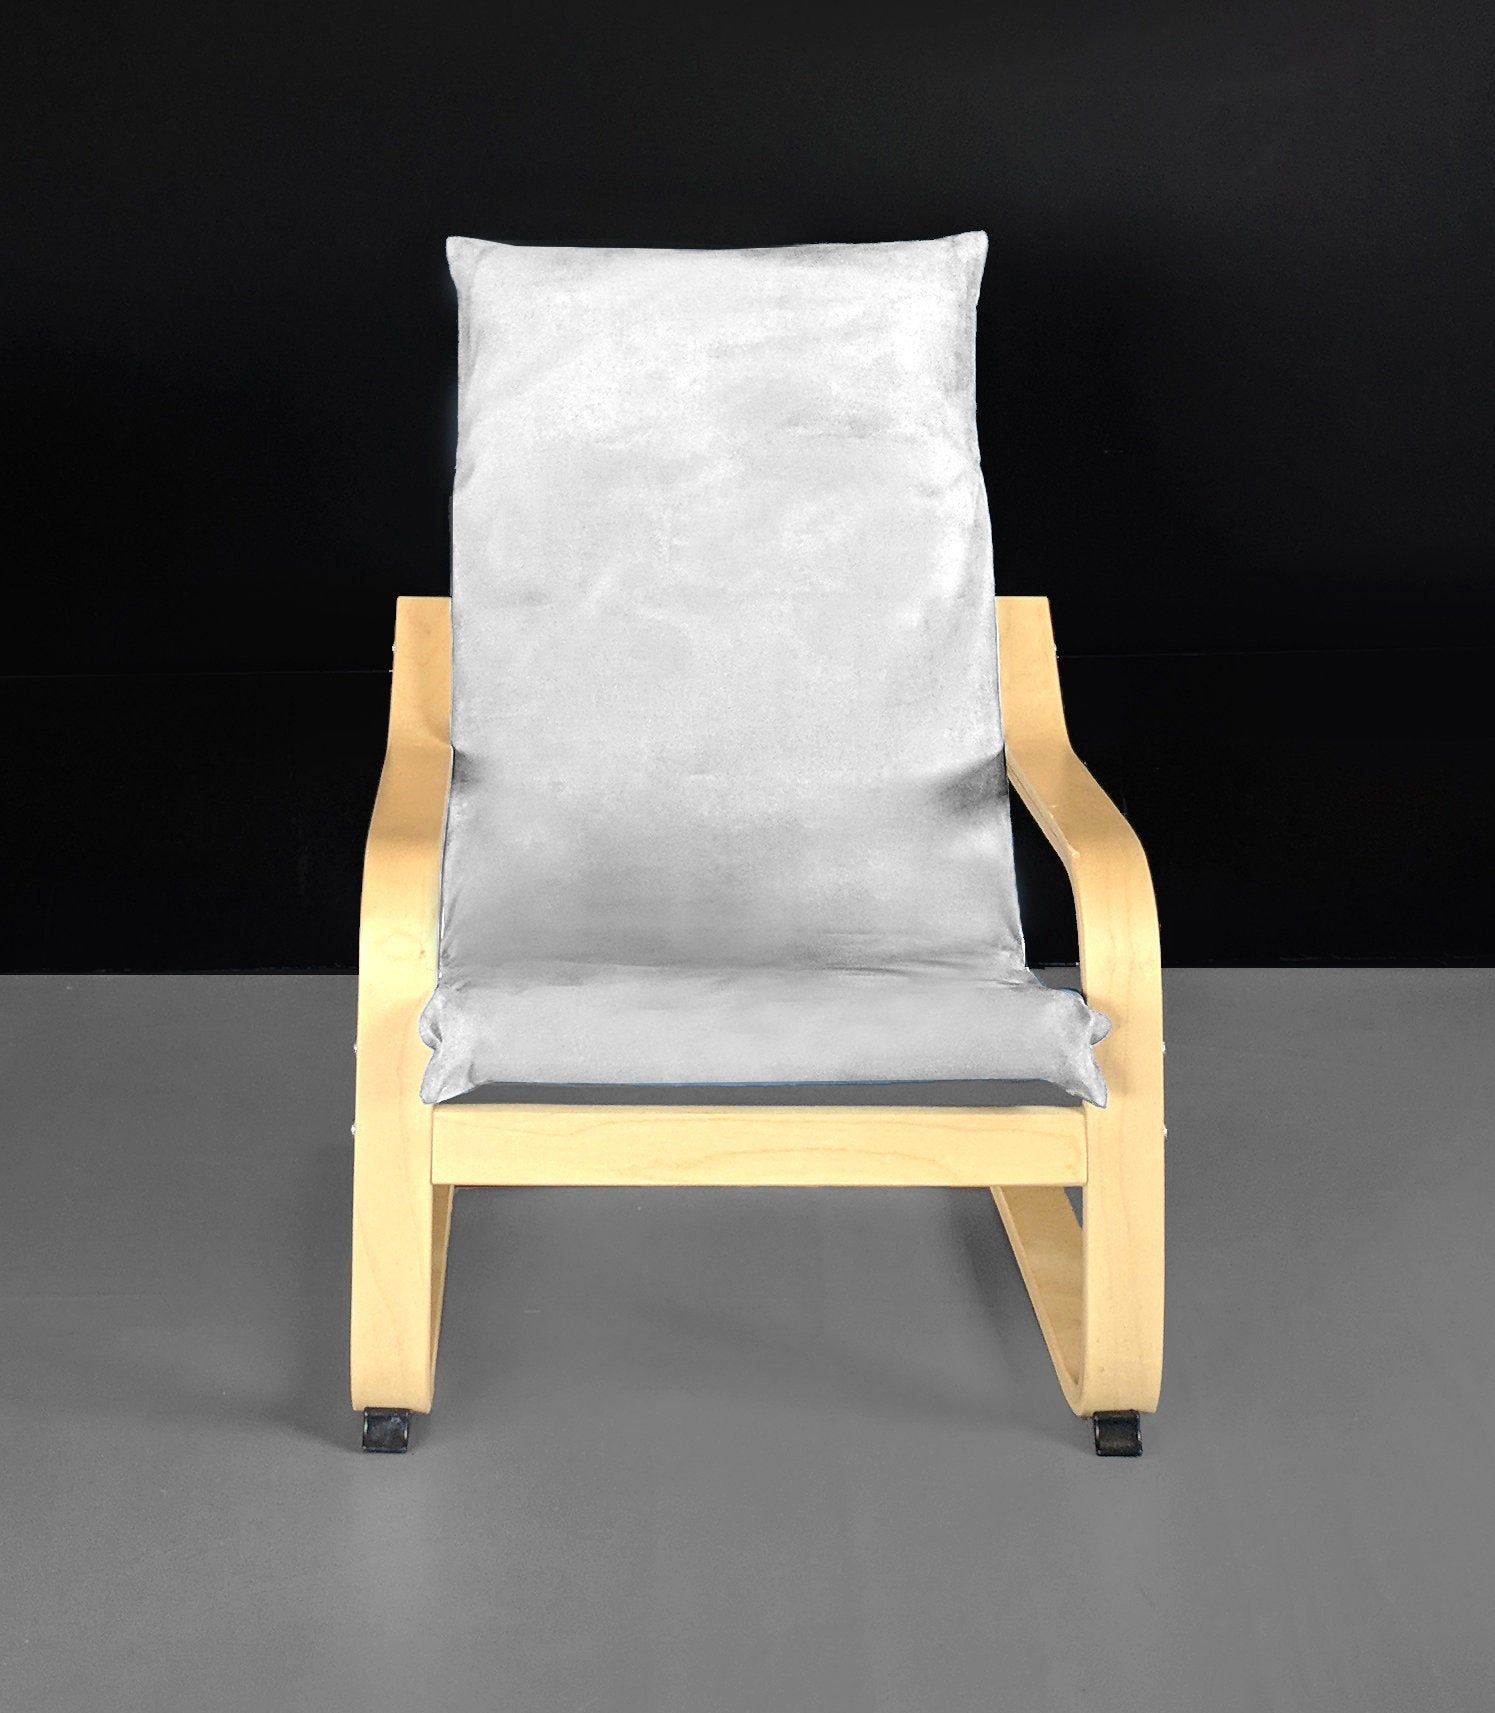 Solid Silver Suede Childs Ikea Poang Chair Cover Henriksdal